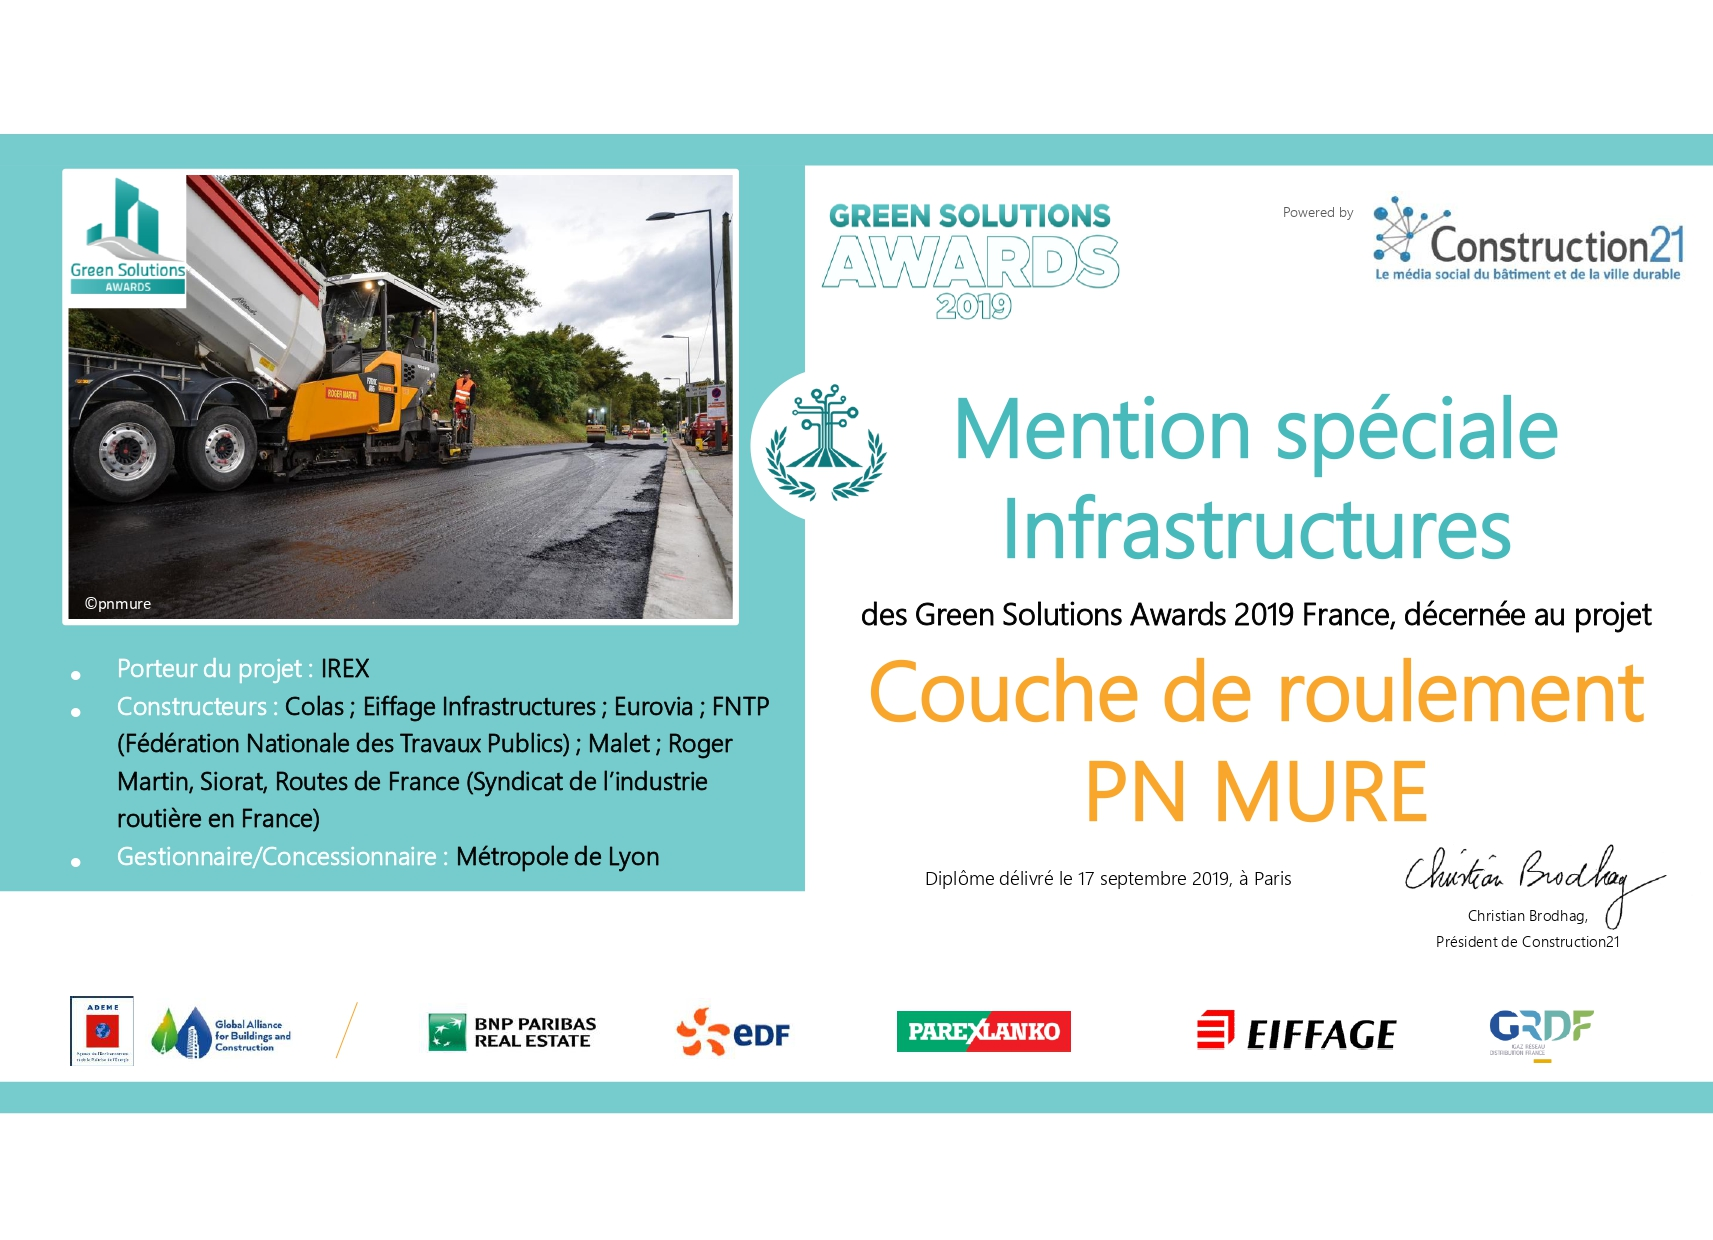 Le projet national MURE lauréat des Green Solutions Awards